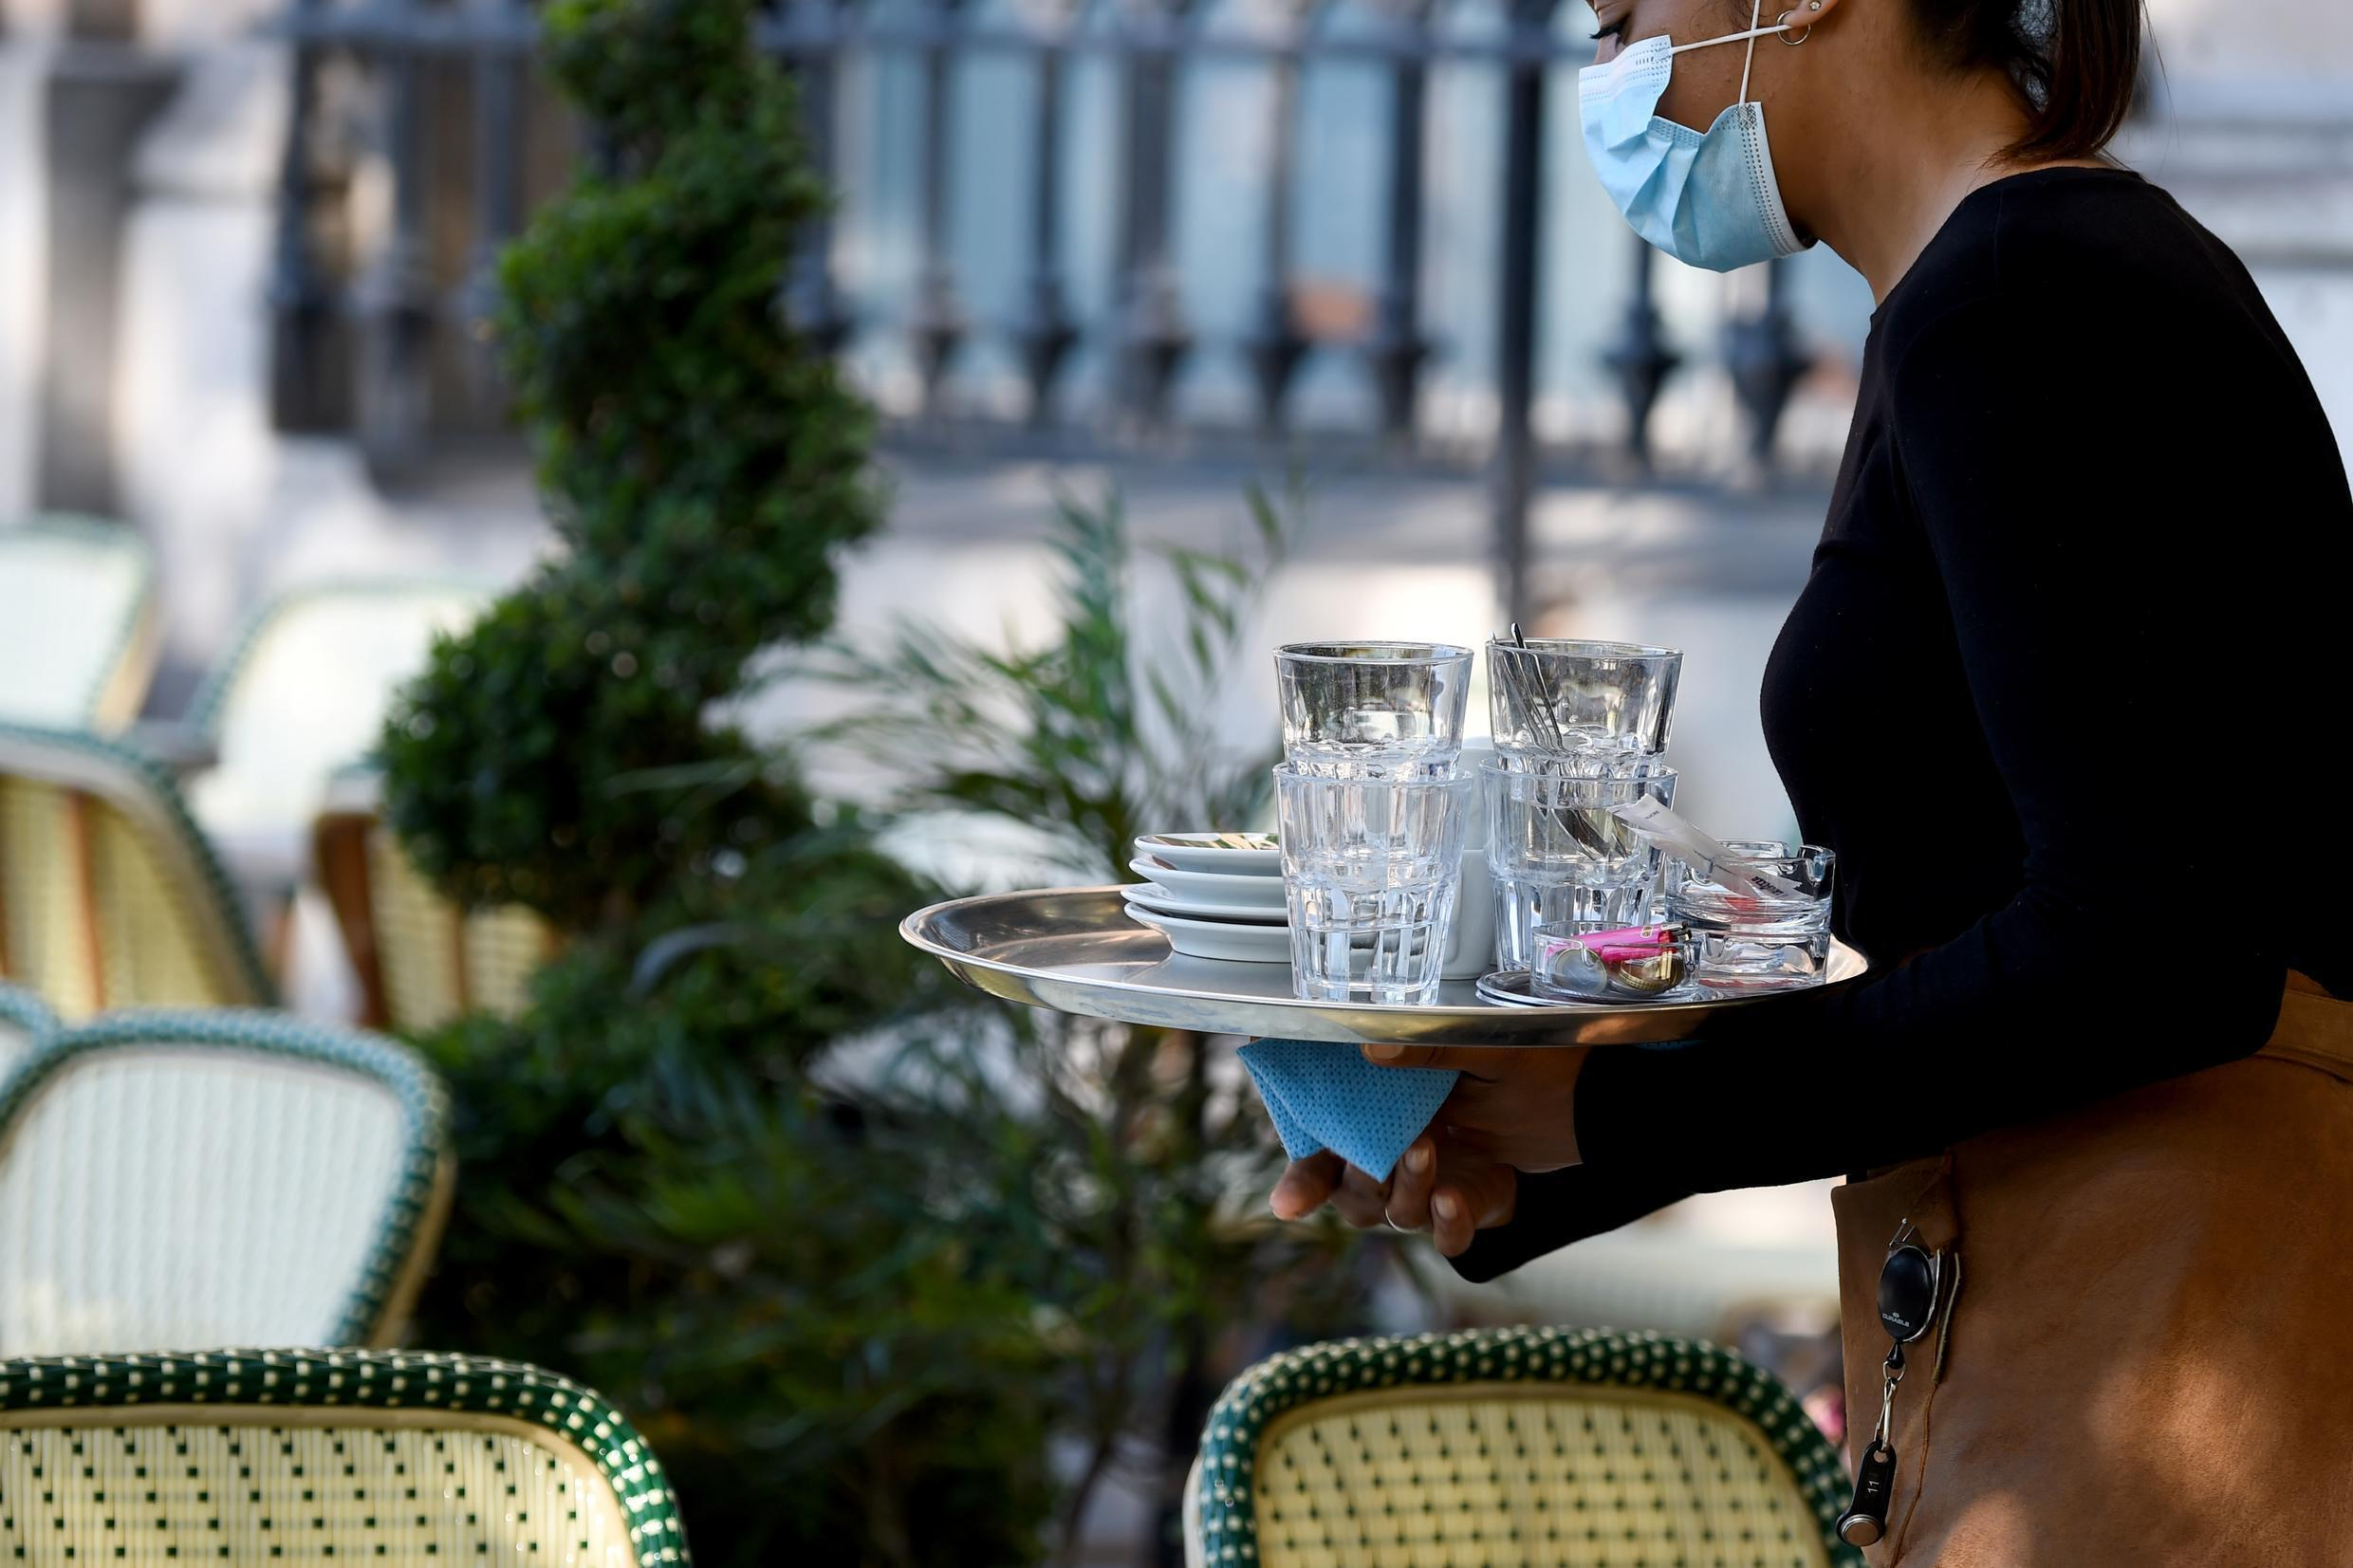 A waitress wears a mask at the Café des Phares on place de la Bastille.